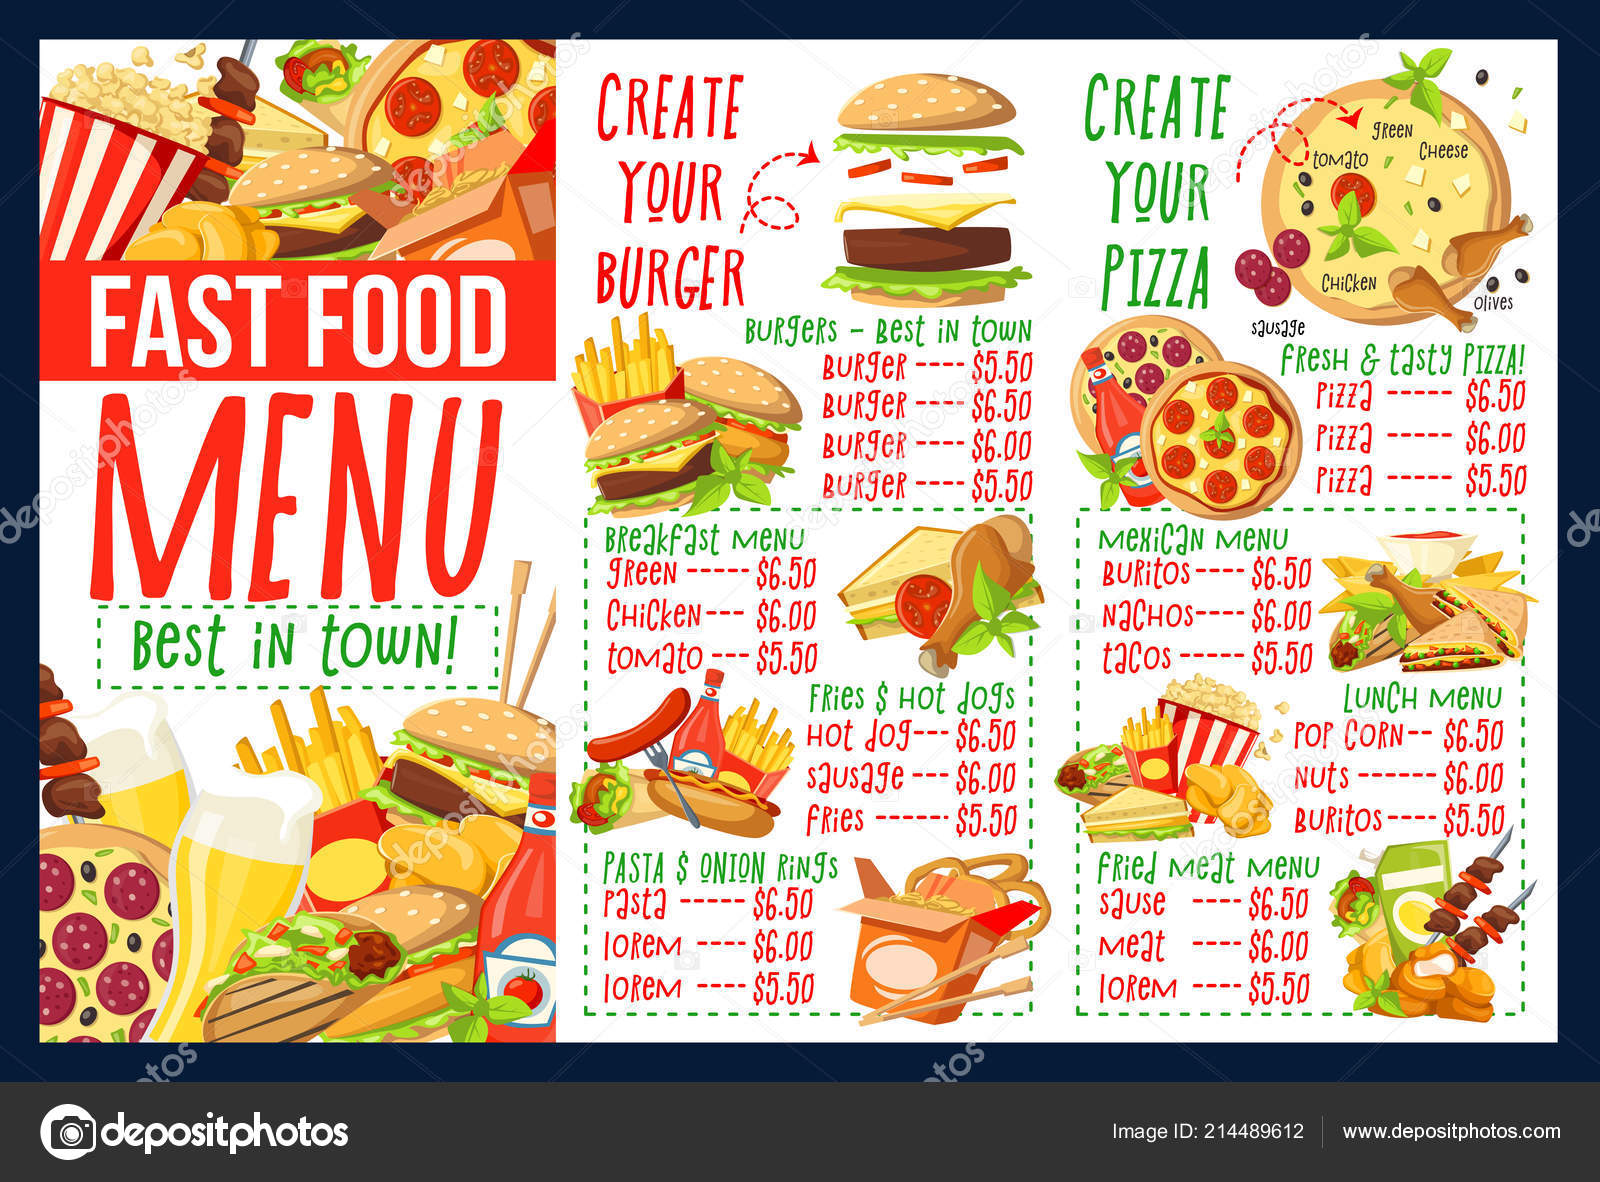 Fast Food Menu With Burger And Pizza Ingredients Stock Vector C Seamartini 214489612